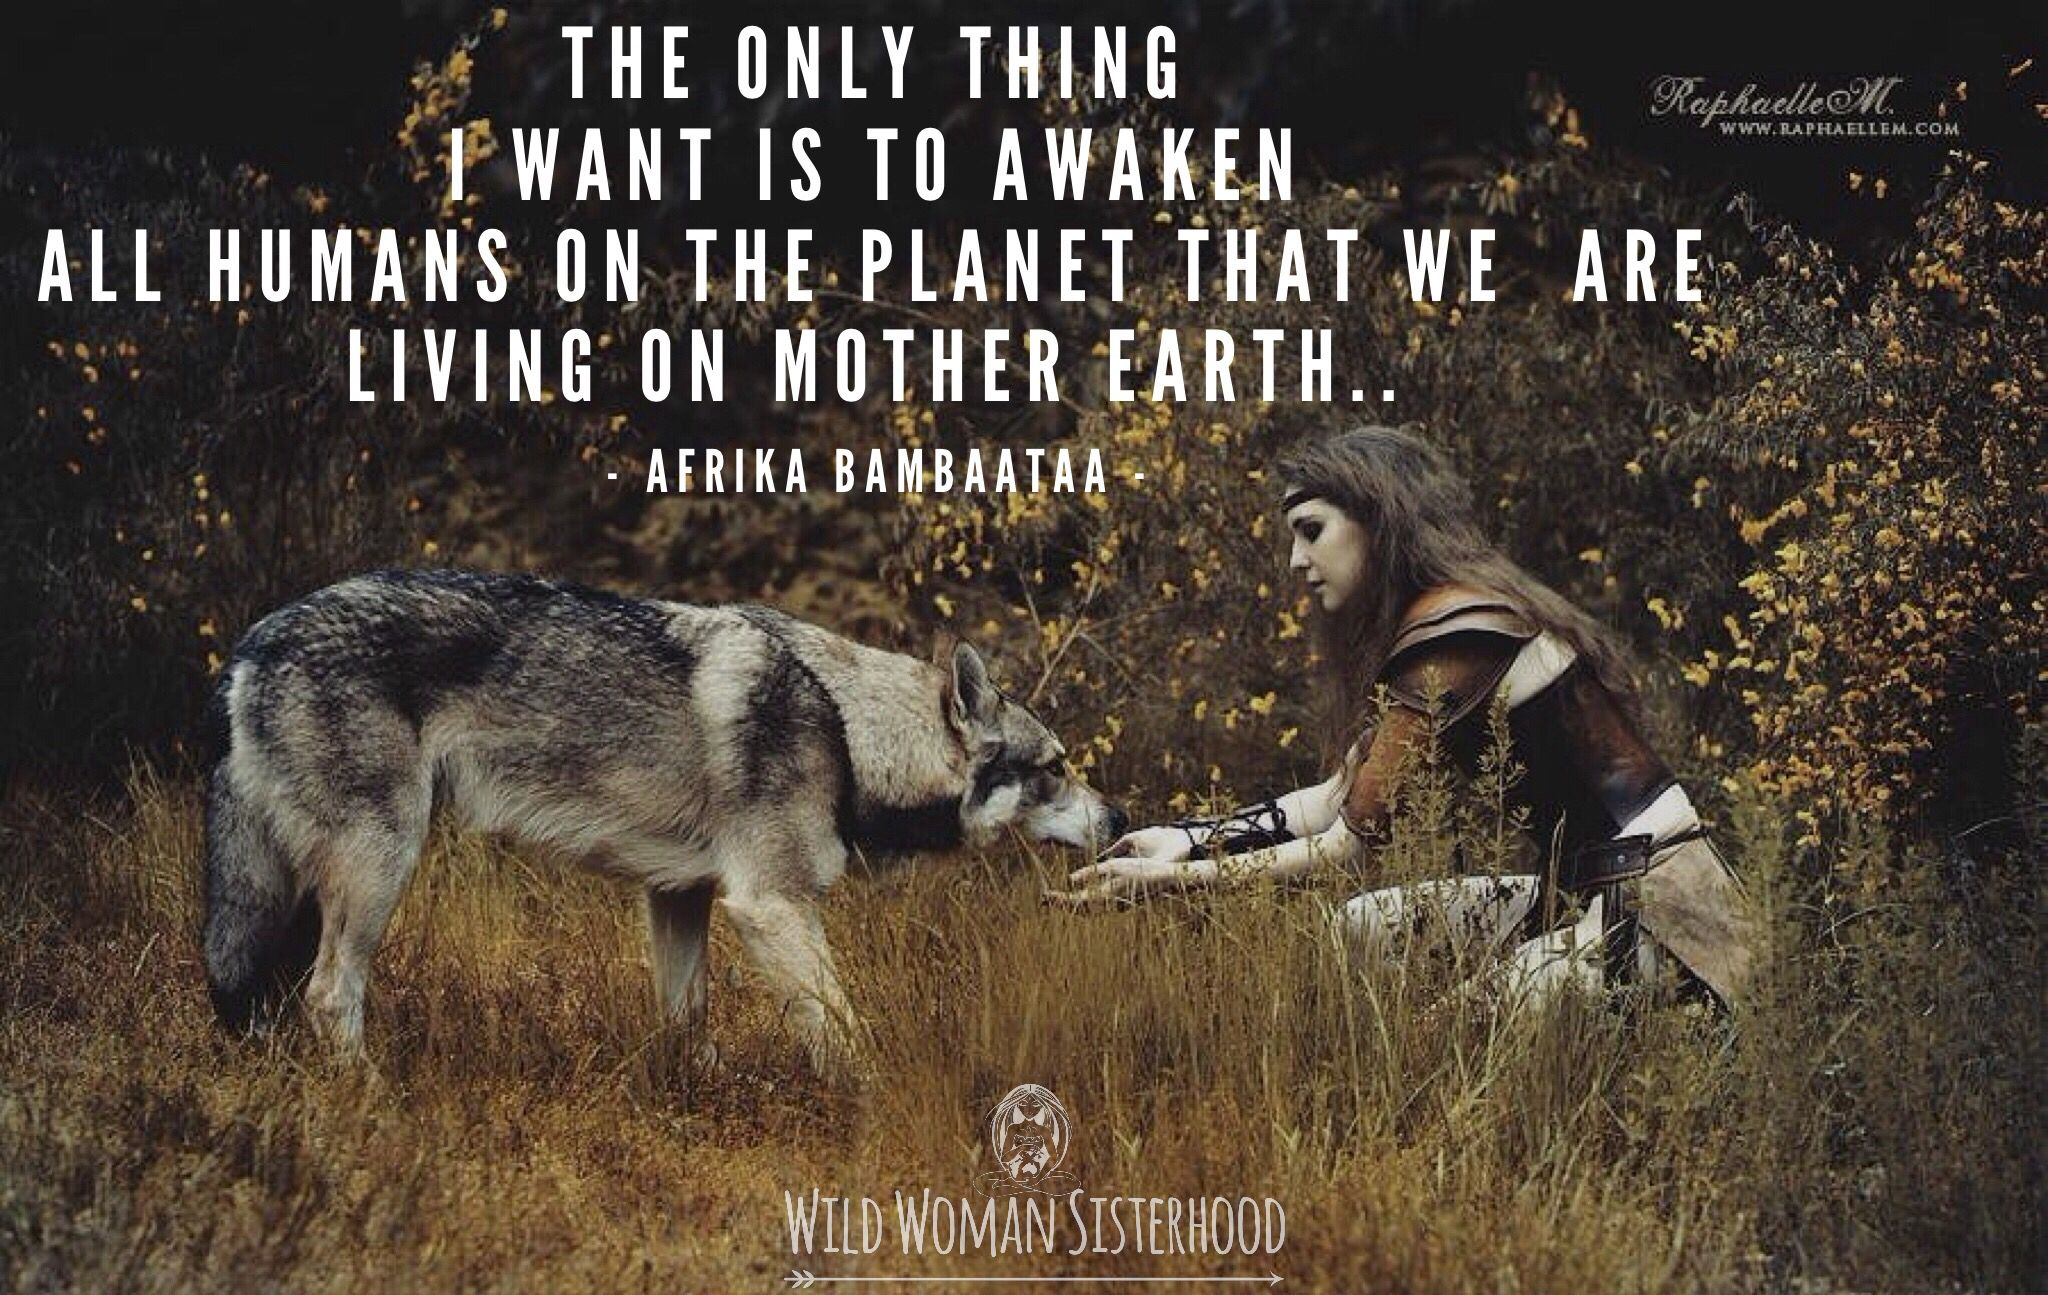 The only thing I want is to AWAKEN all humans on the planet that we are living on Mother Earth.. - Afrika Bambaataa - ॐWILD WOMAN SISTERHOODॐ #WildWomanSisterhood #wildwomanmedicine #wildwomangratitude #wildwomansisterhood #wildwomanmedicine #wildwomanteachings #nature #earth #erthenspirit #touchtheearth